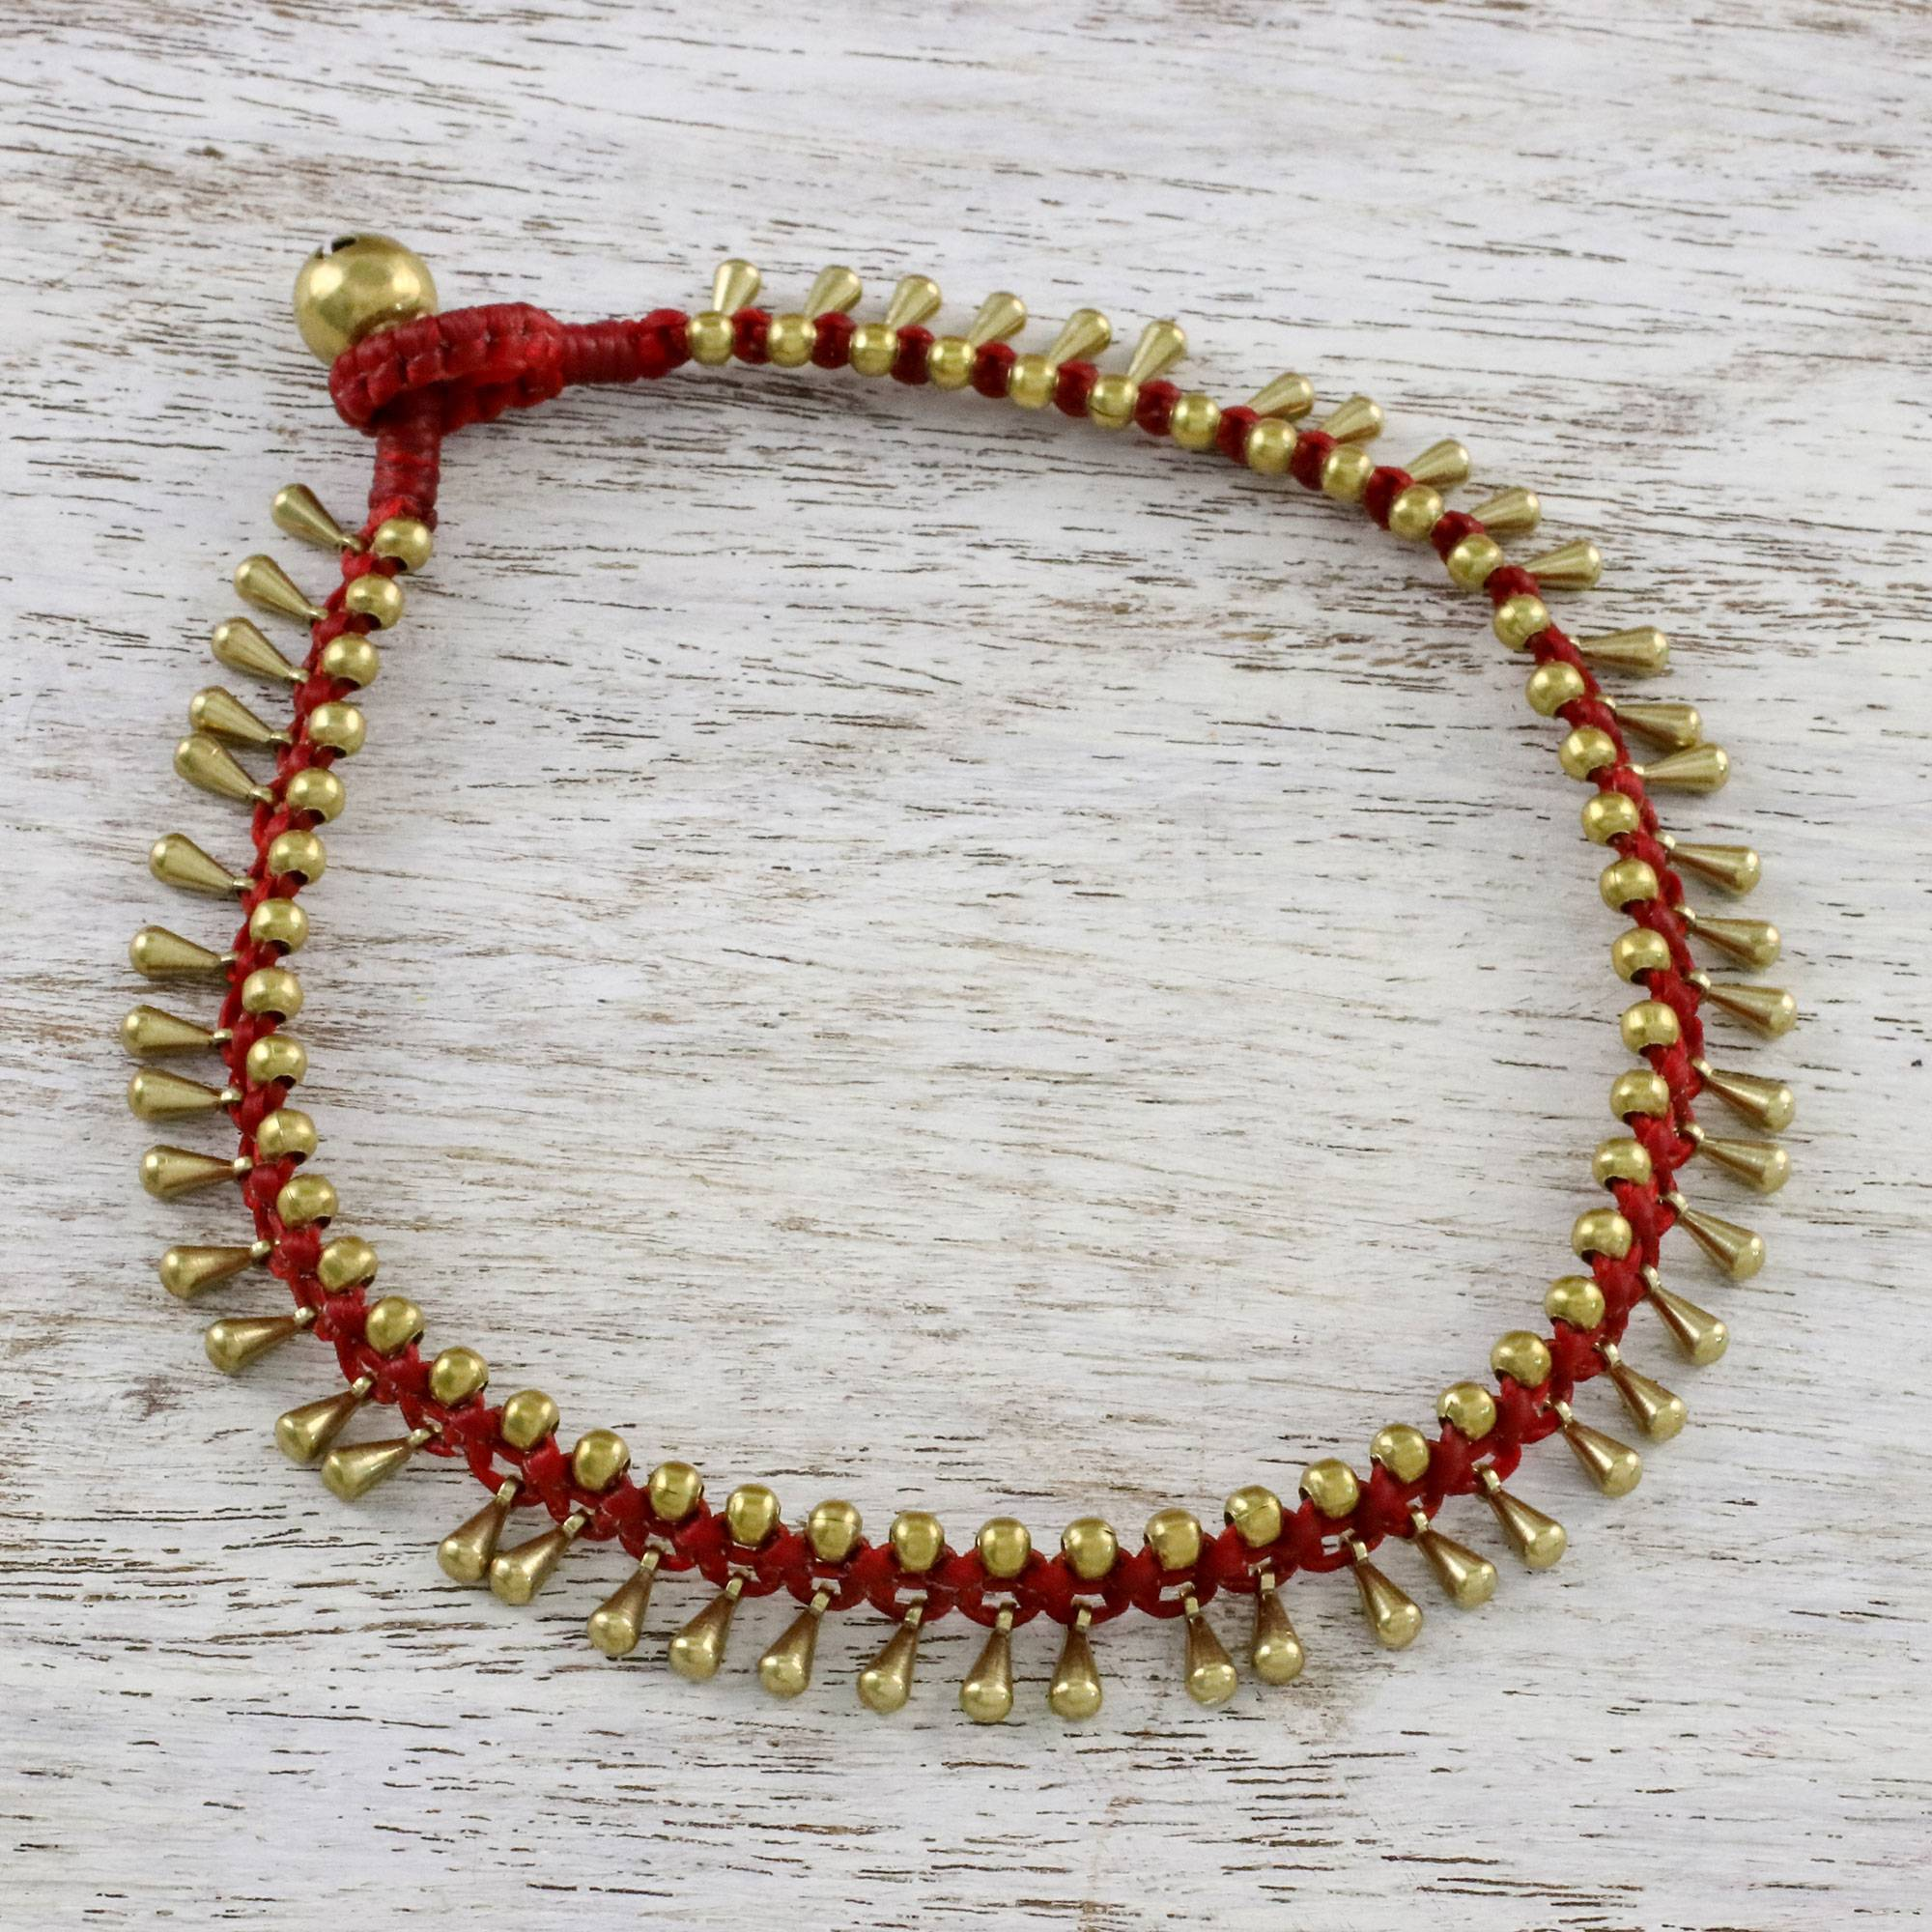 clasp with garnet scarlet today ball watches buy sterling jewelry lobster palace dangling charms india link ankelet claw red shipping silver anklet handmade bracelet product free